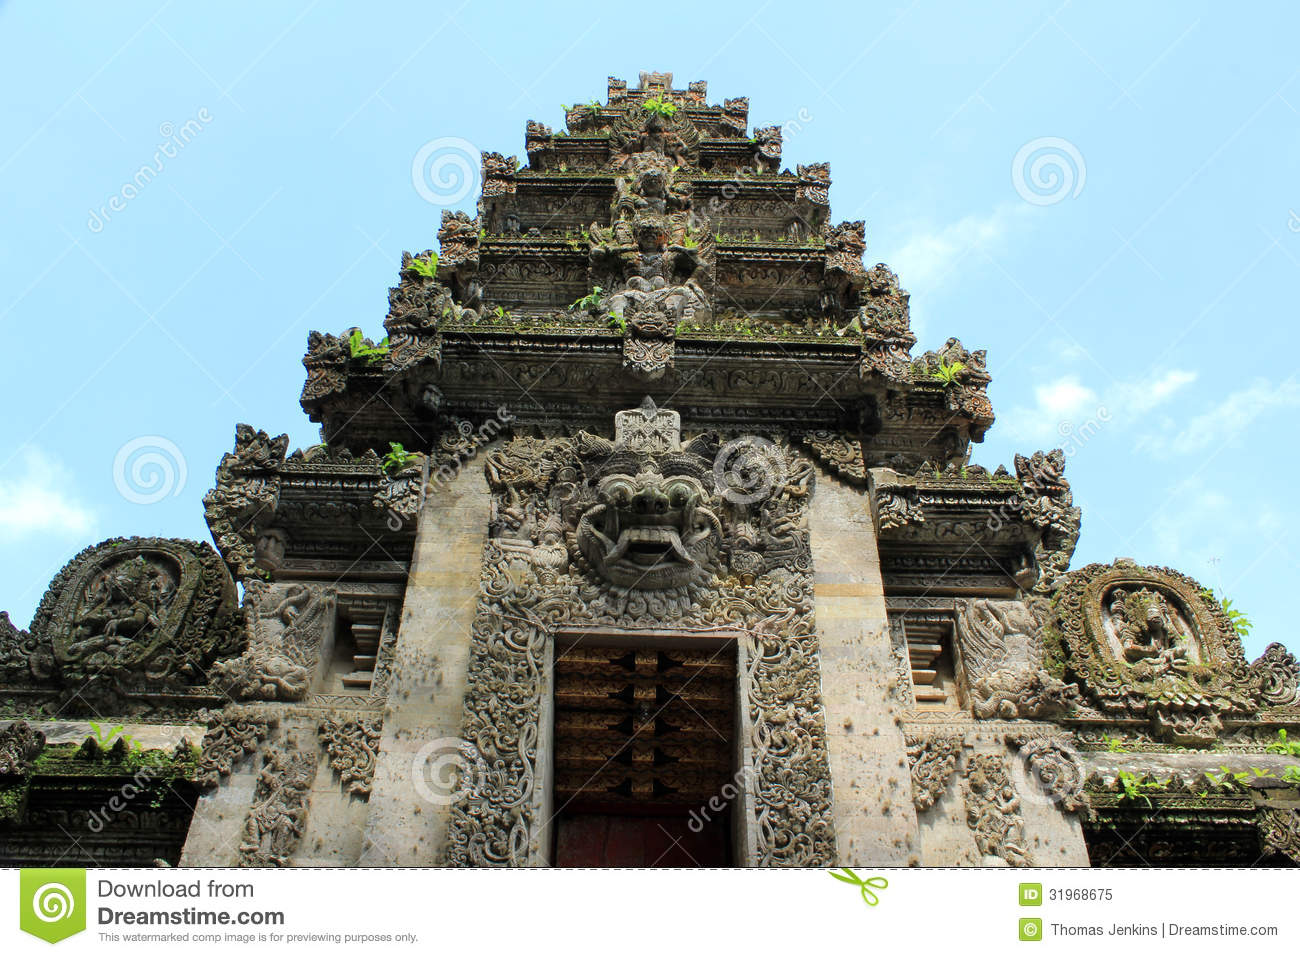 Balinese temple entrance with intricate stone carving